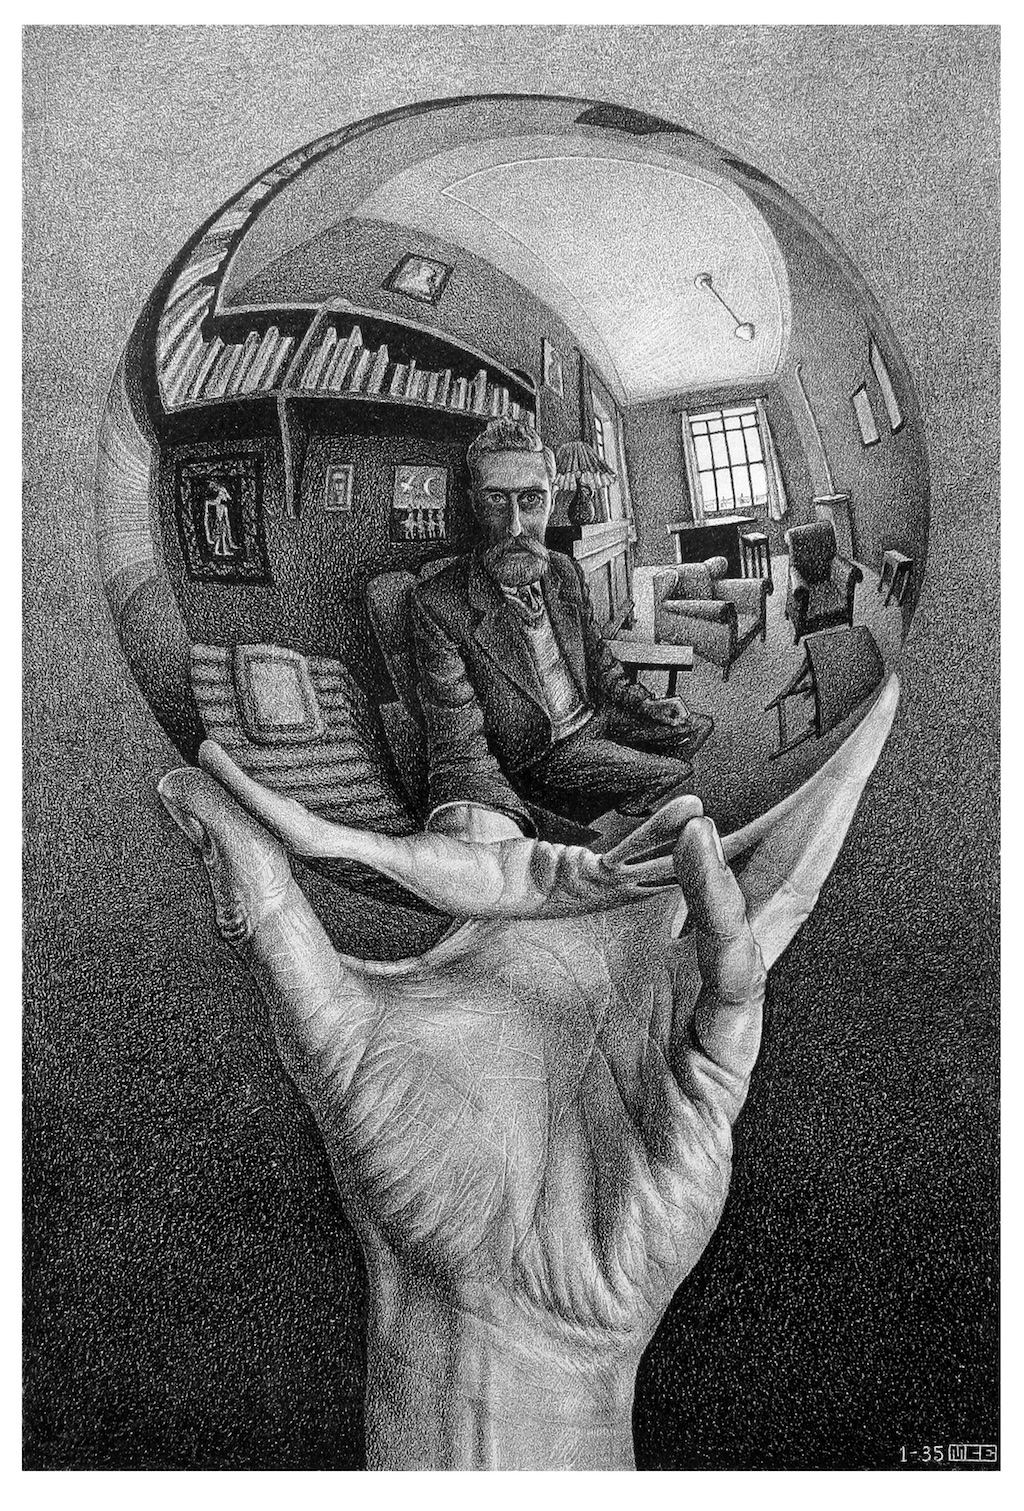 3--hand-with-reflecting-sphere-copy.jpg